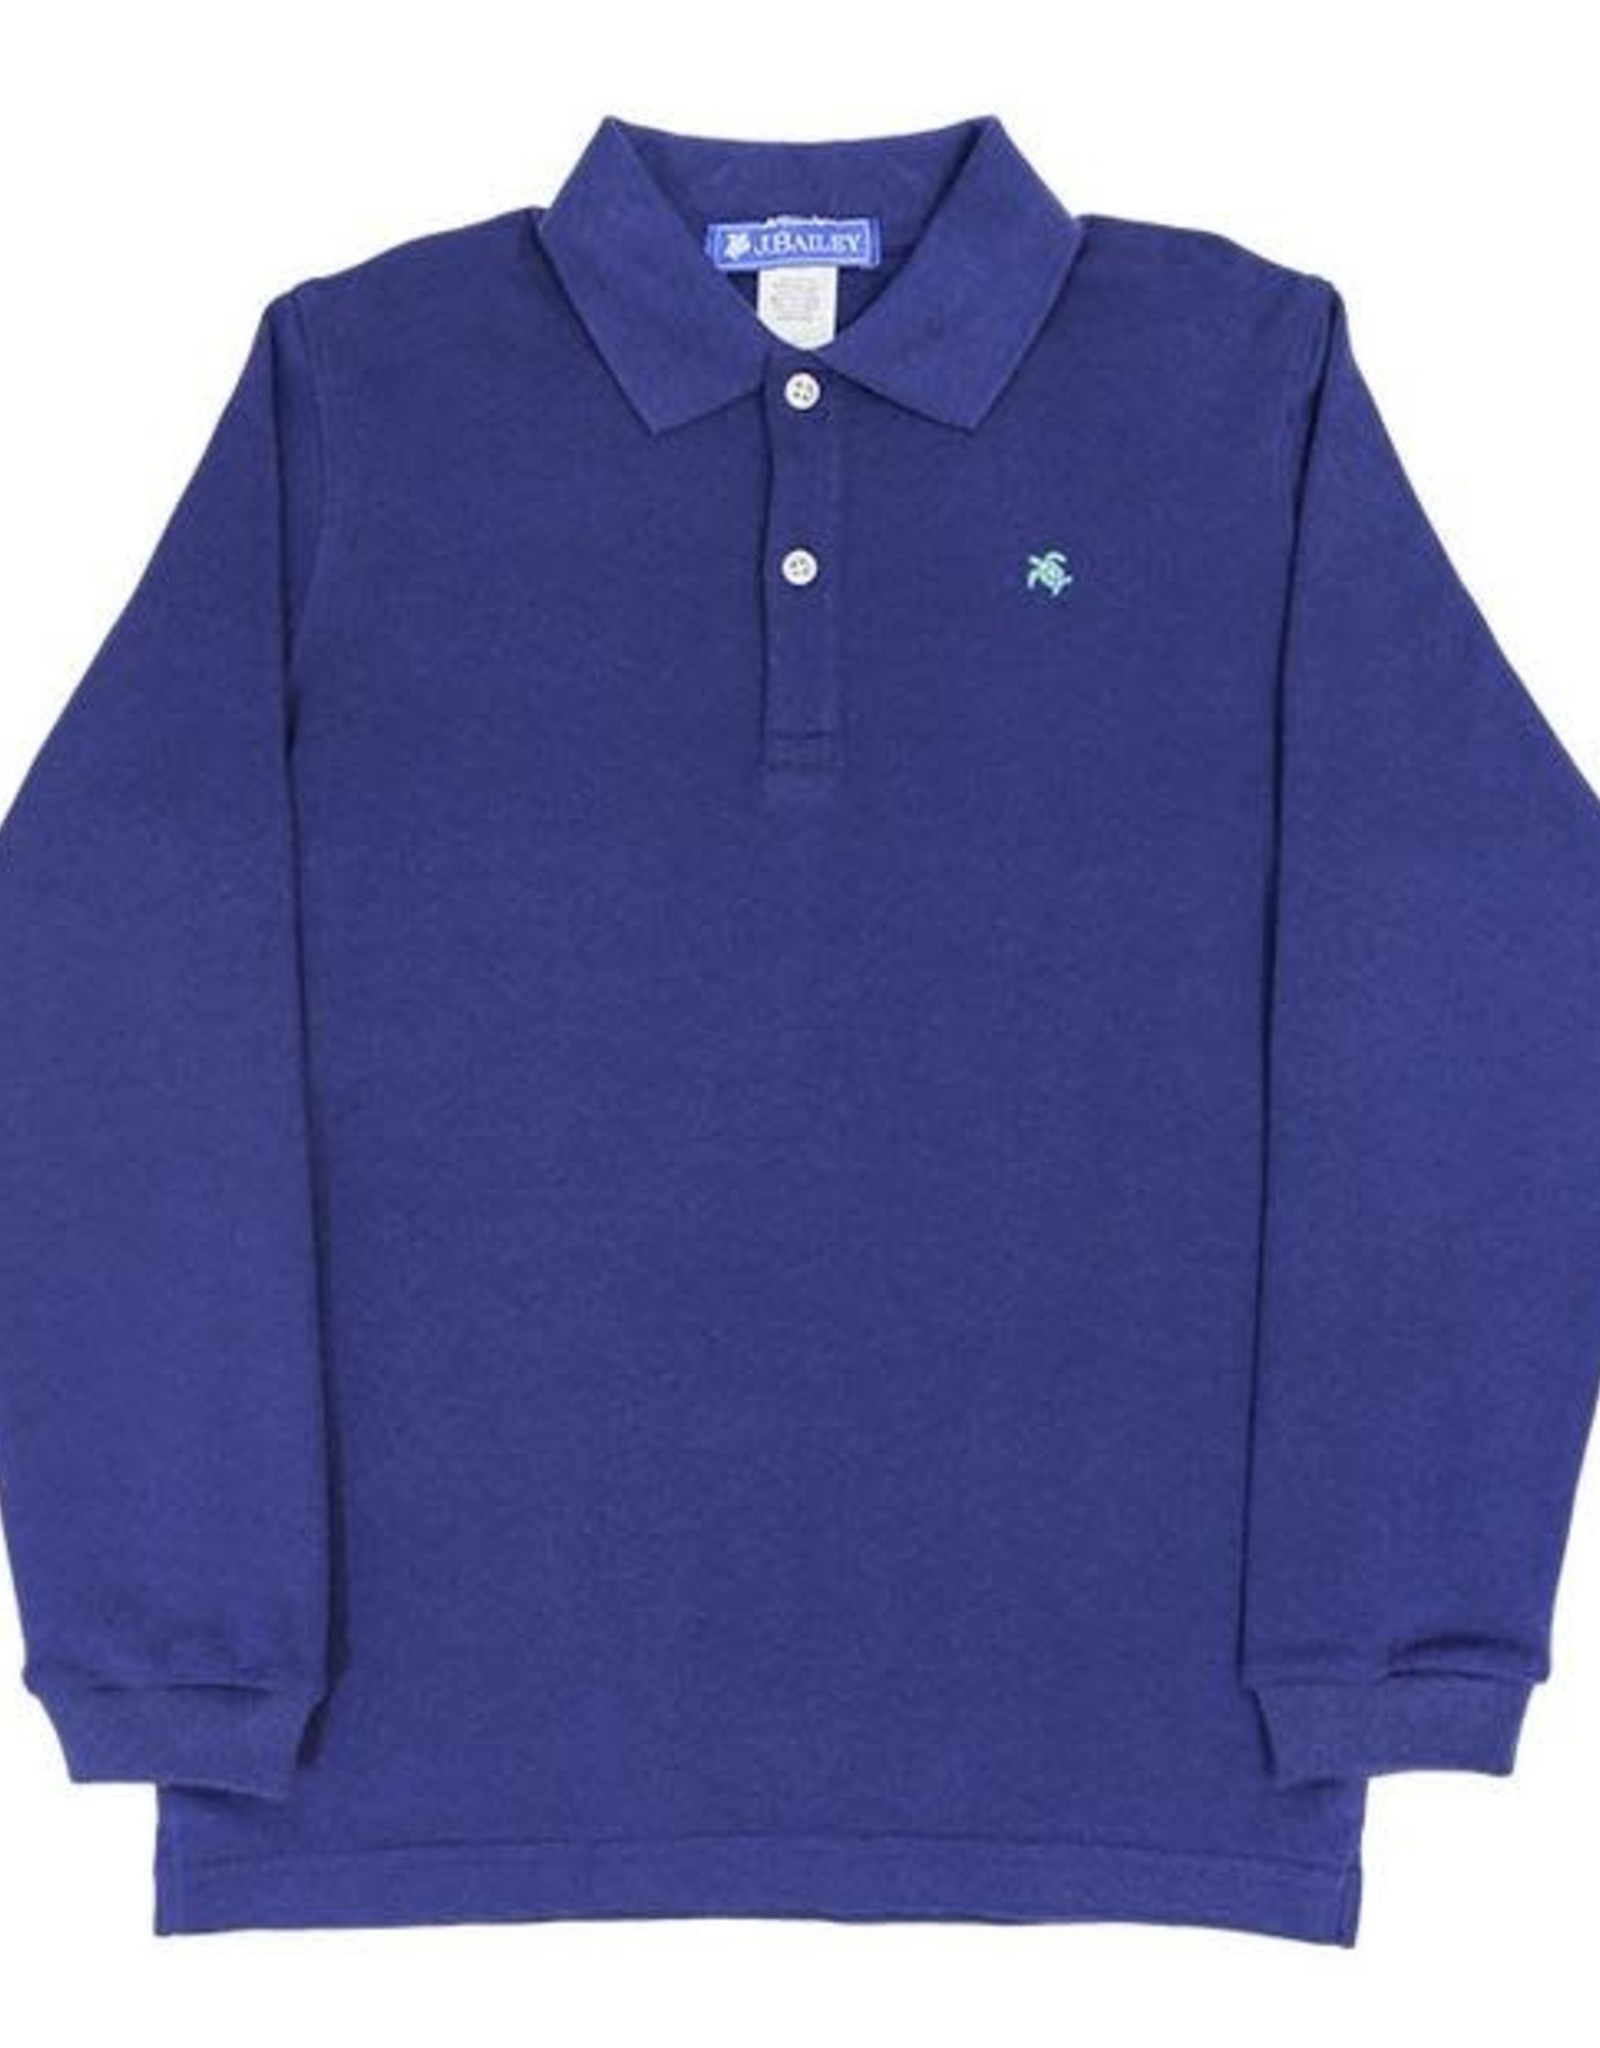 The Bailey Boys Long Sleeve Navy Polo Shirt